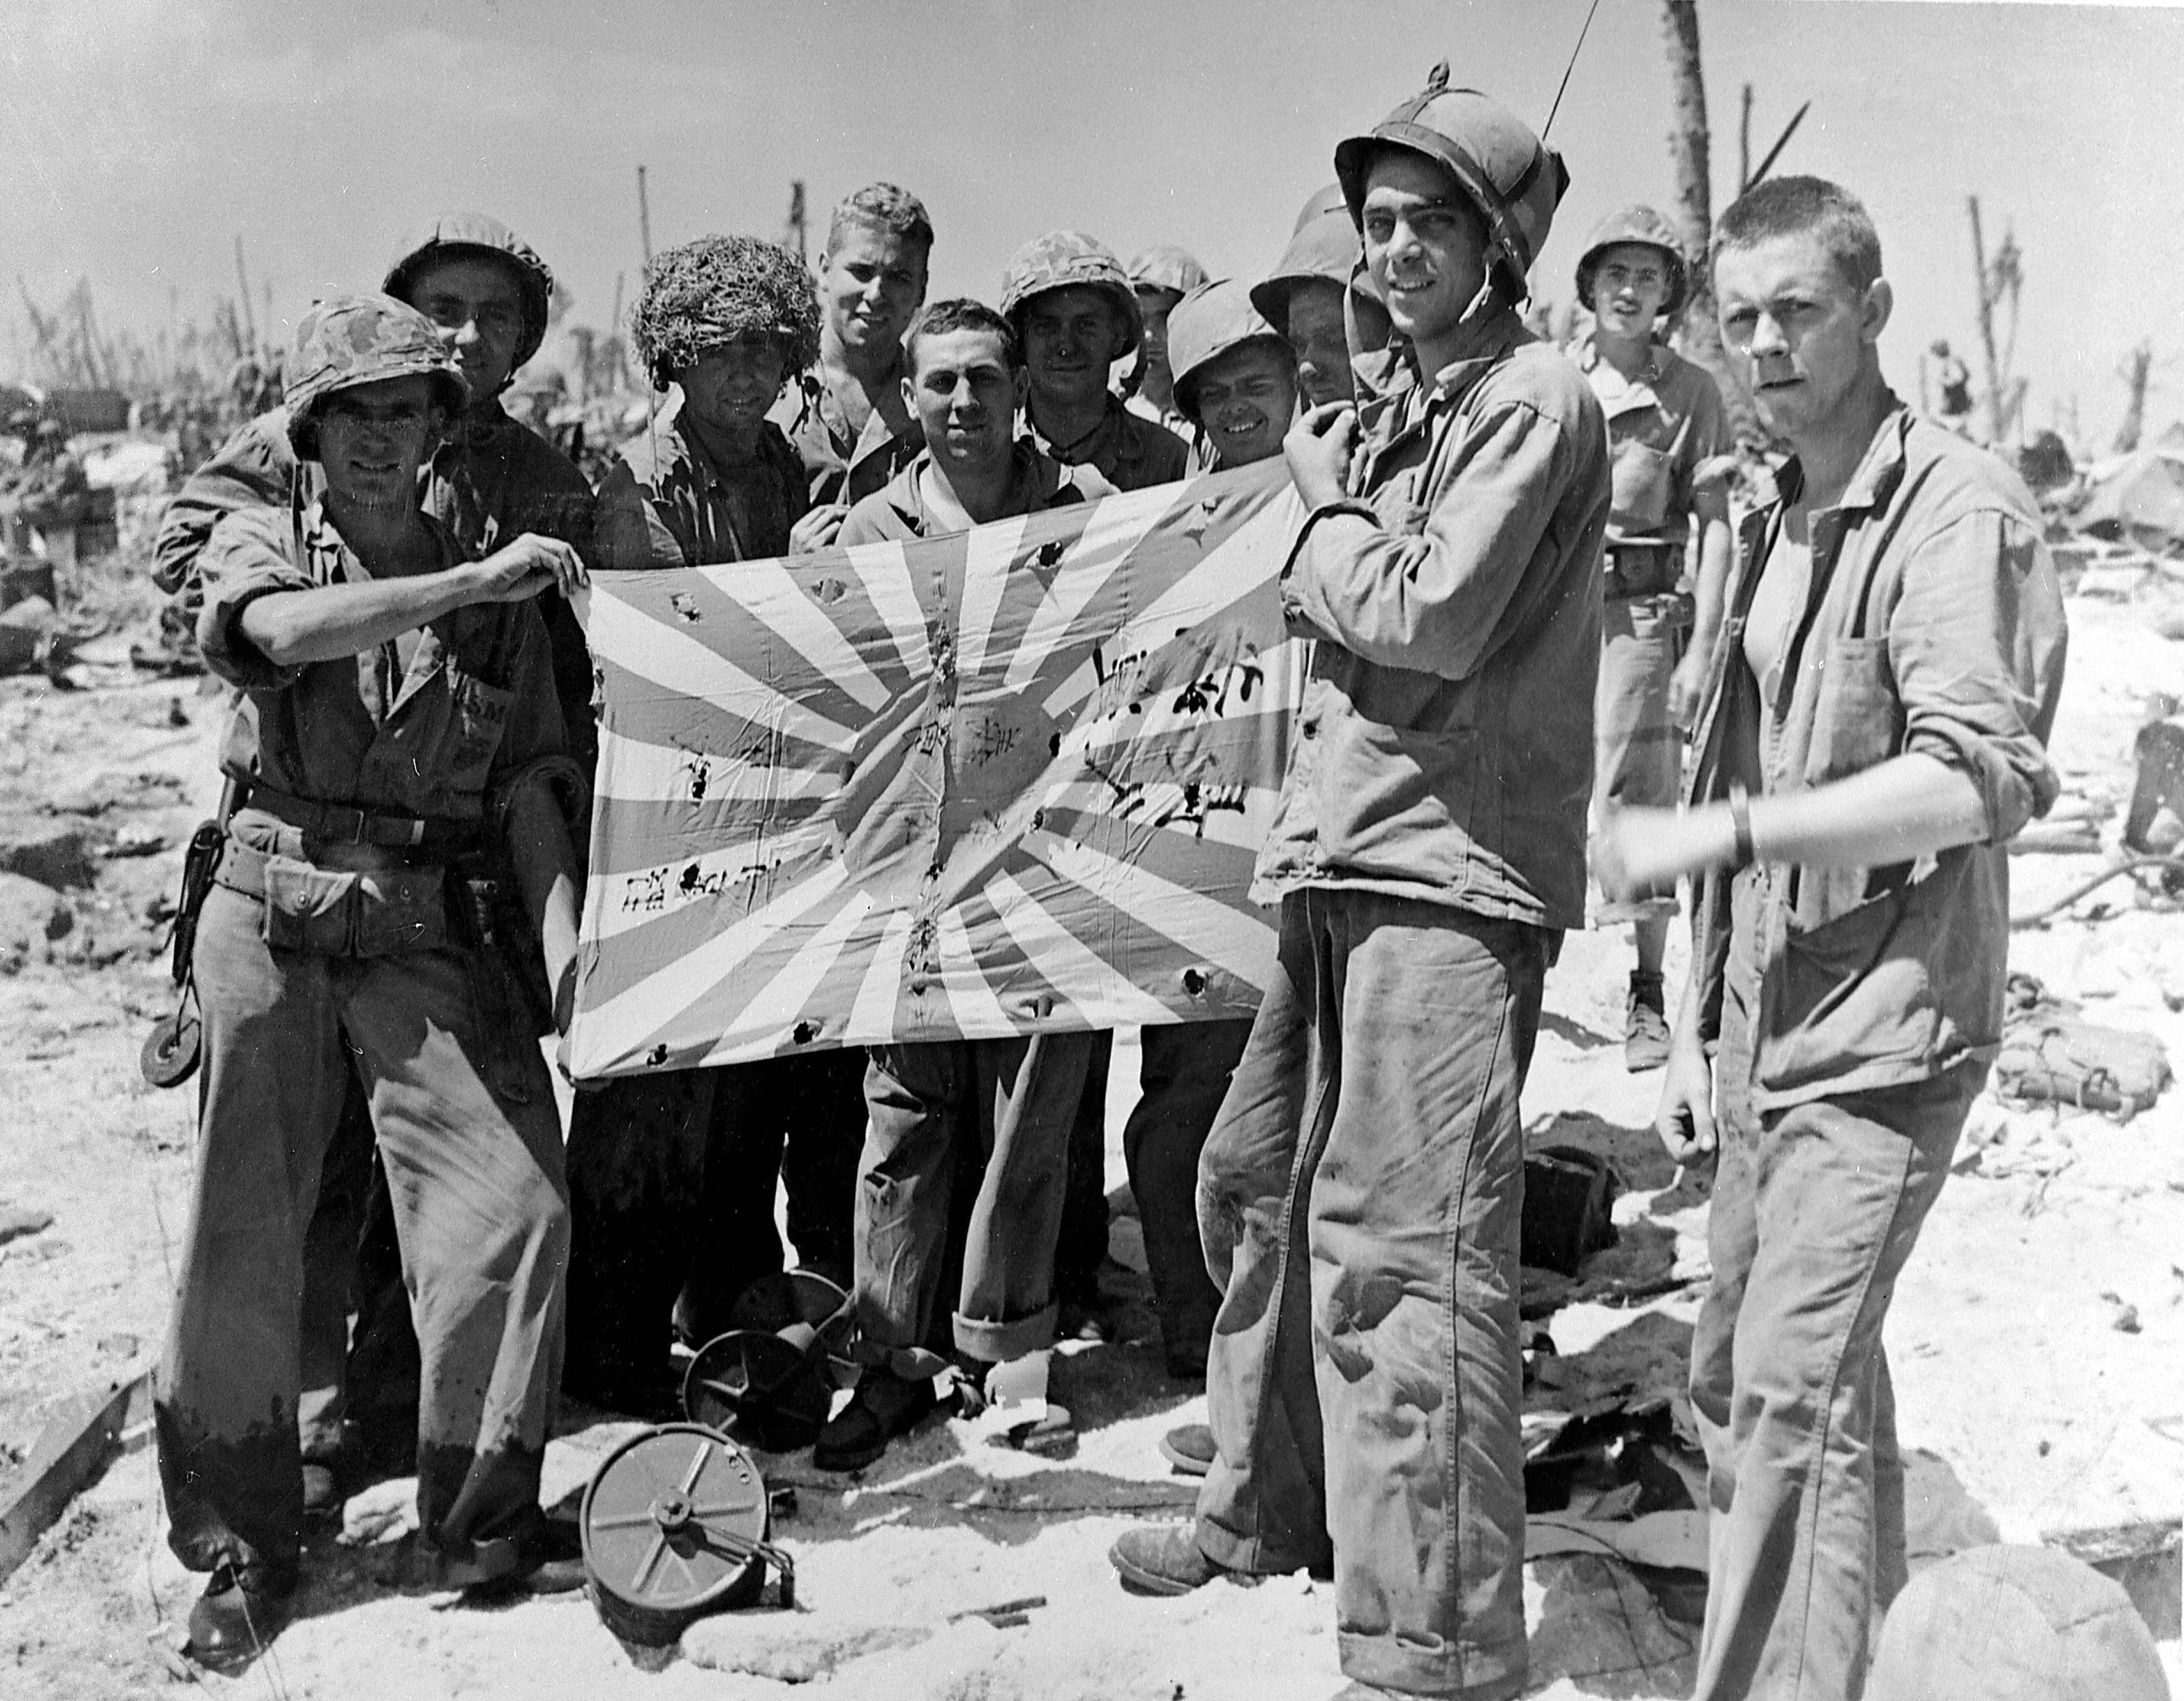 This Day In Wwii History Feb 17 1944 U S Troops Land